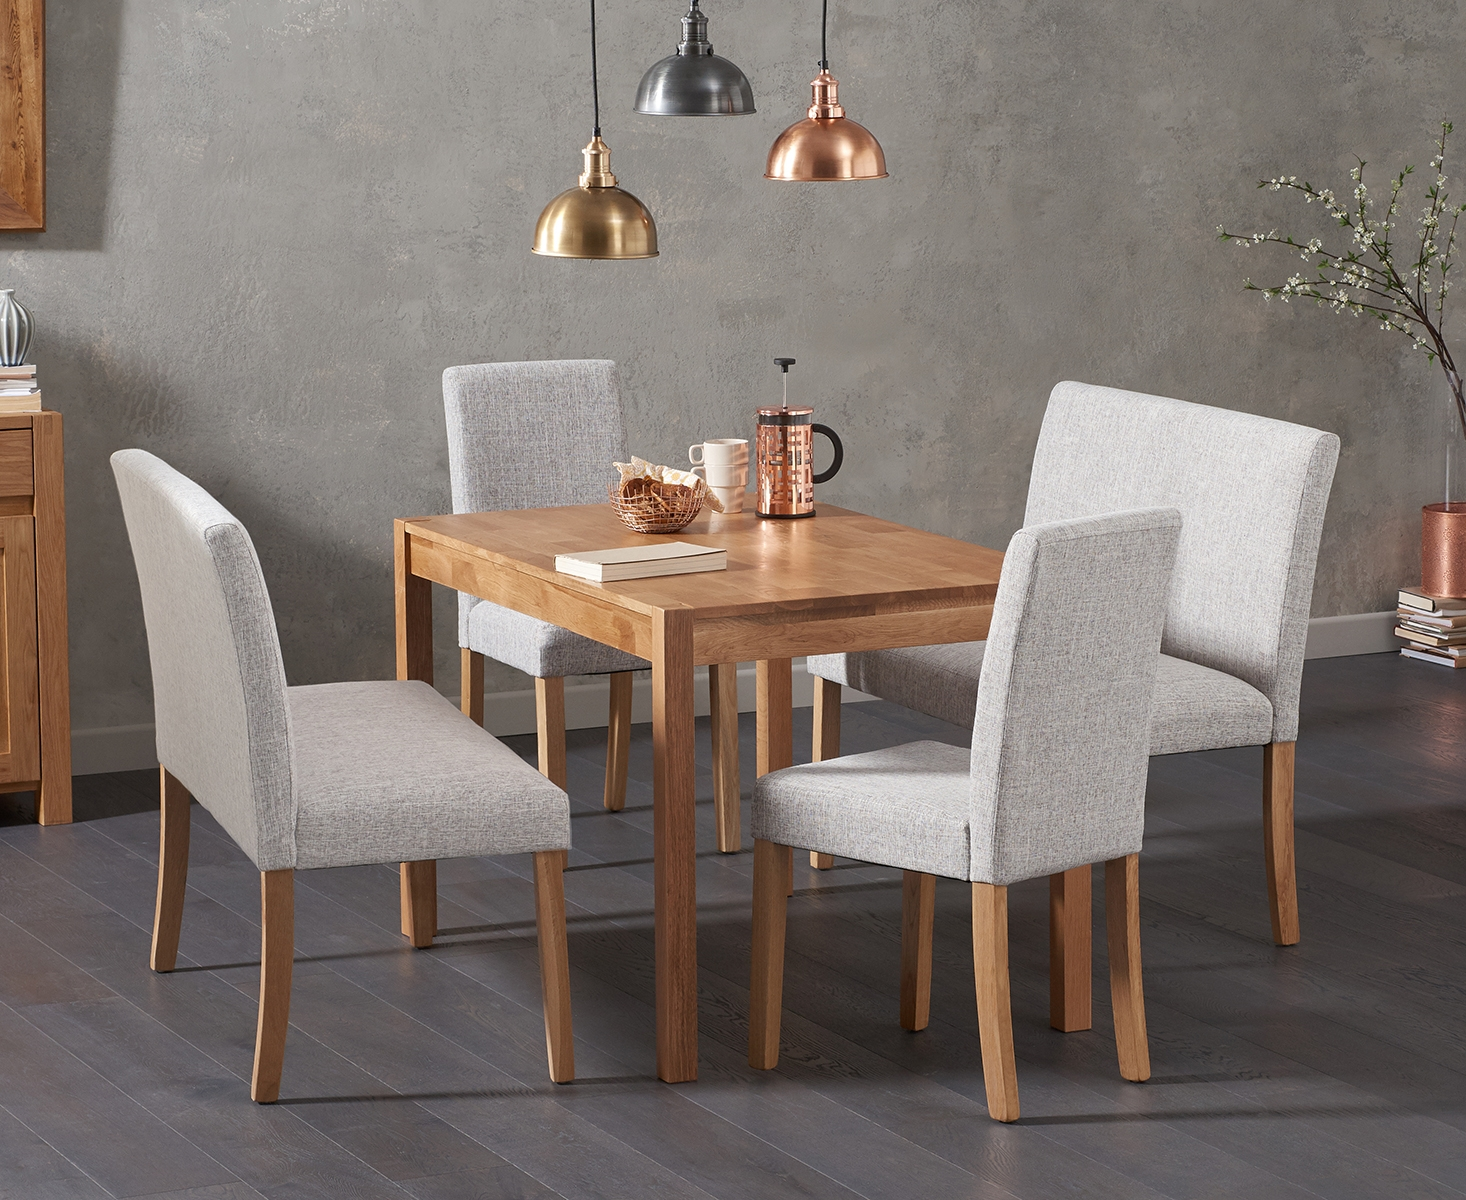 An image of Oxford 150cm Solid Oak Dining Table with Mia Grey Benches with Backs and Mia Cha...